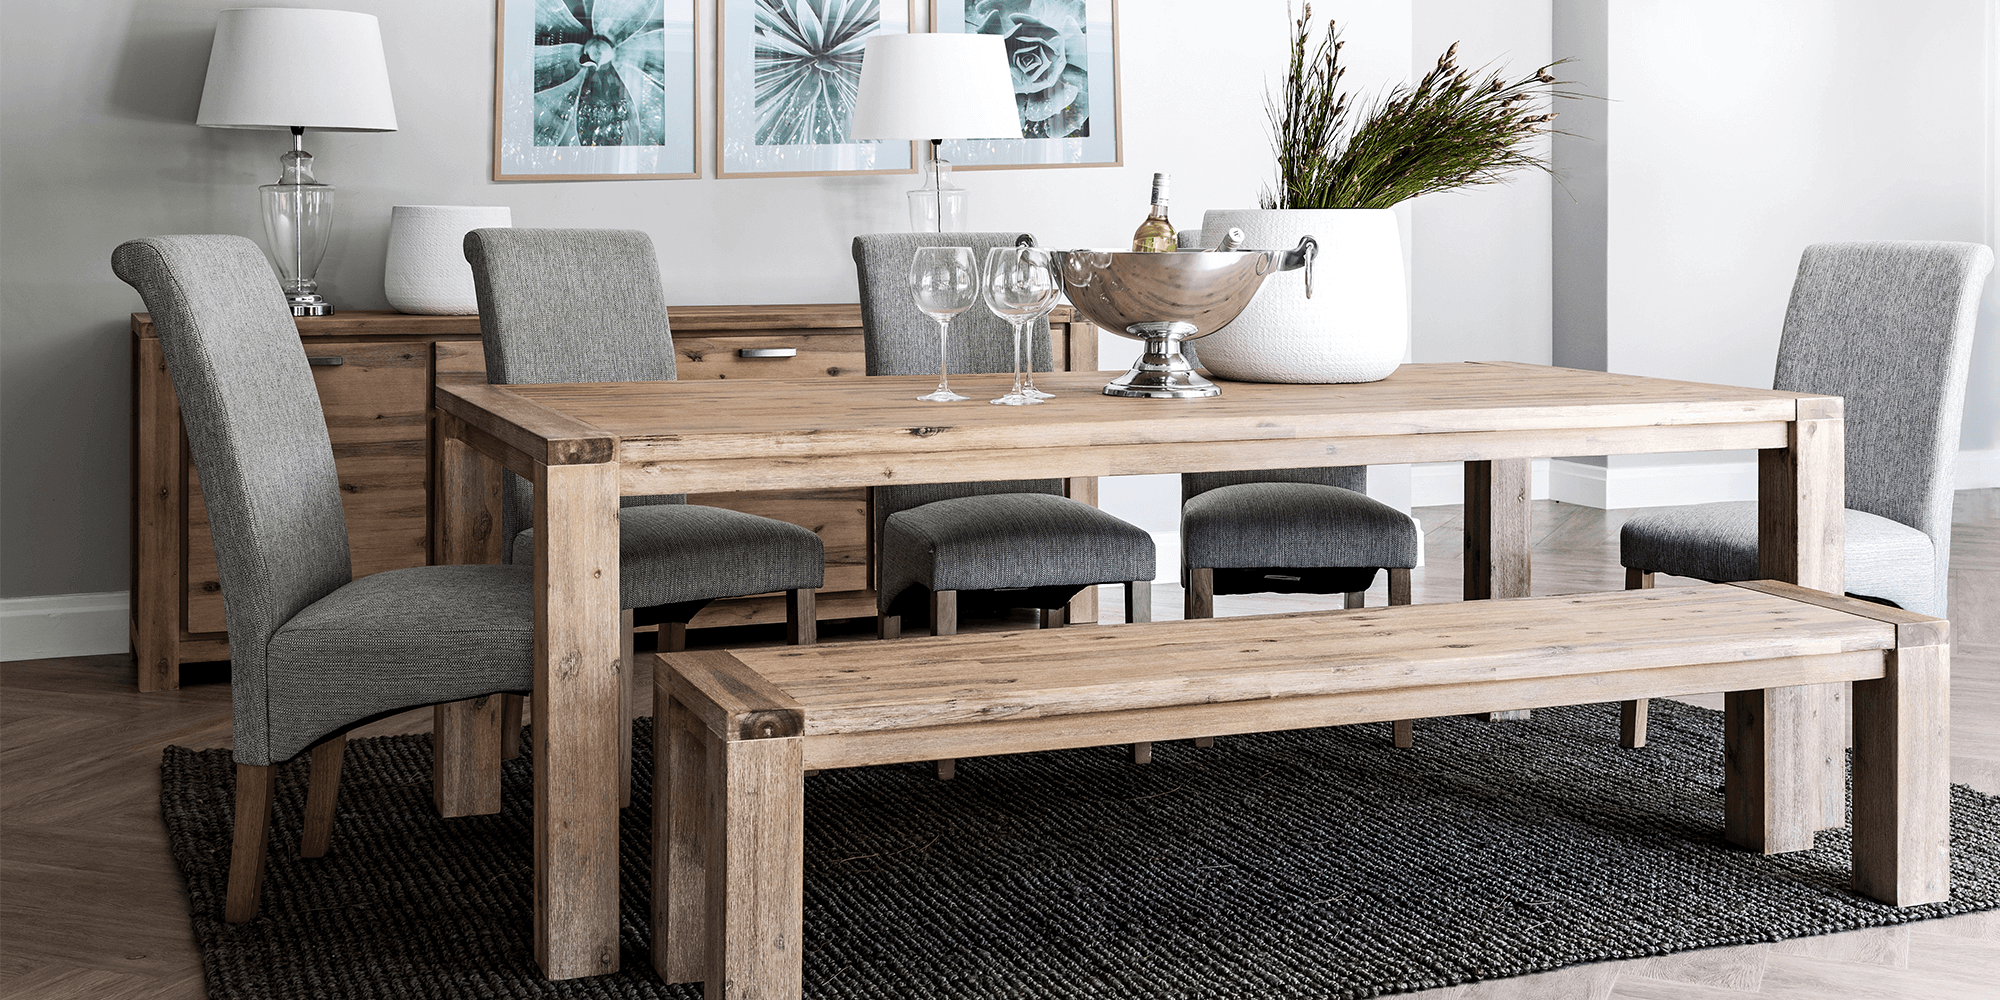 Jinga Dining Table 2 2m Dining Tables Dining Dining Room Coricraft Dining Table Home Decor Dining Room Furniture